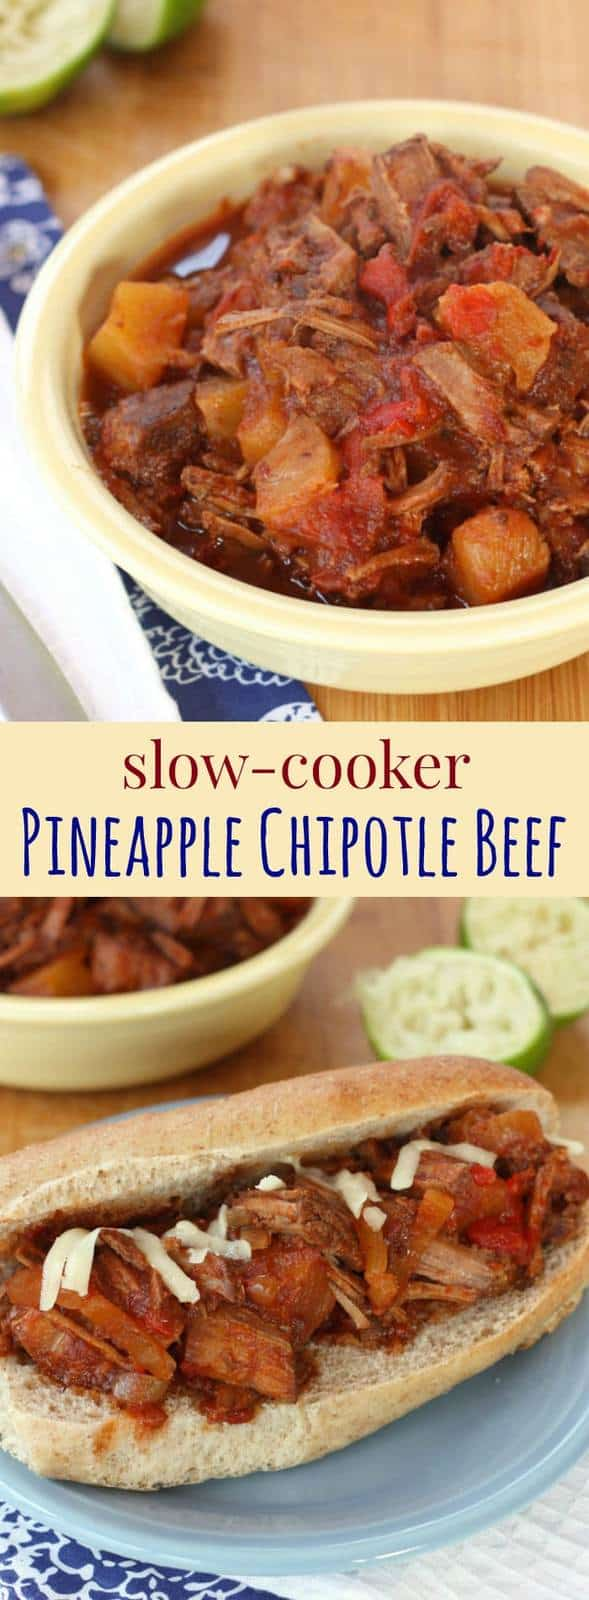 Slow Cooker Pineapple Chipotle Beef - a crock pot recipe for sweet and spicy pulled beef for sandwiches, salads, tacos and more.